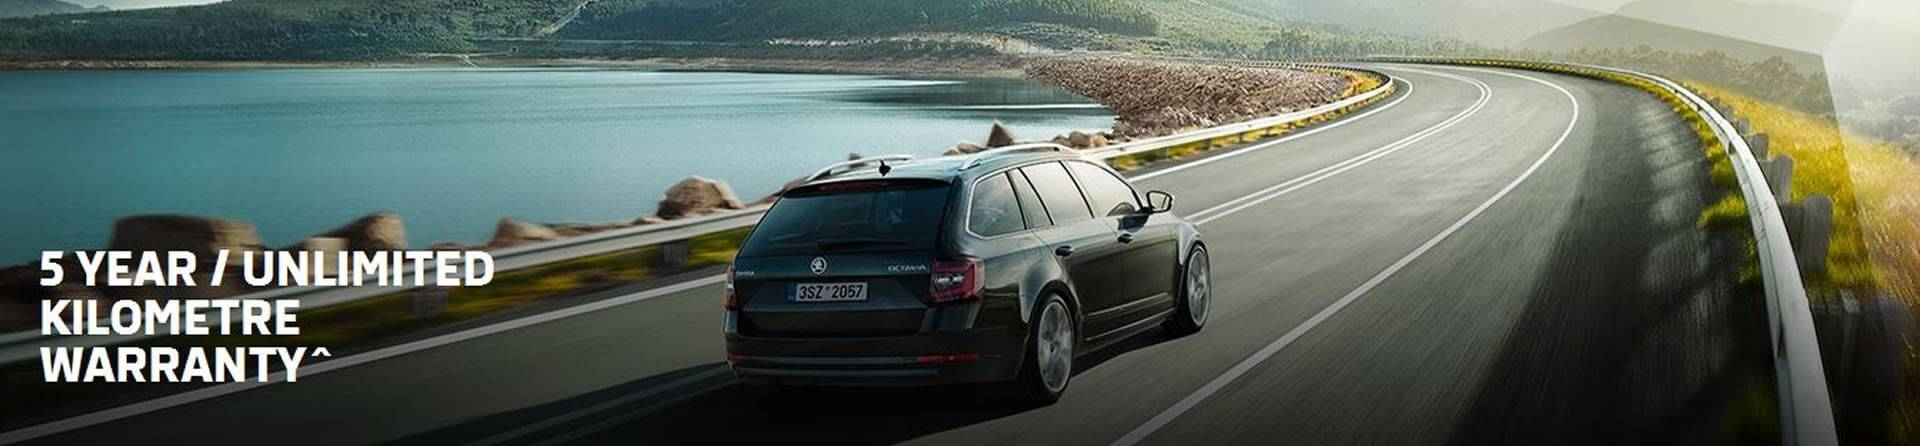 Skoda_Octavia_5 year/unlimited kilometre warranty